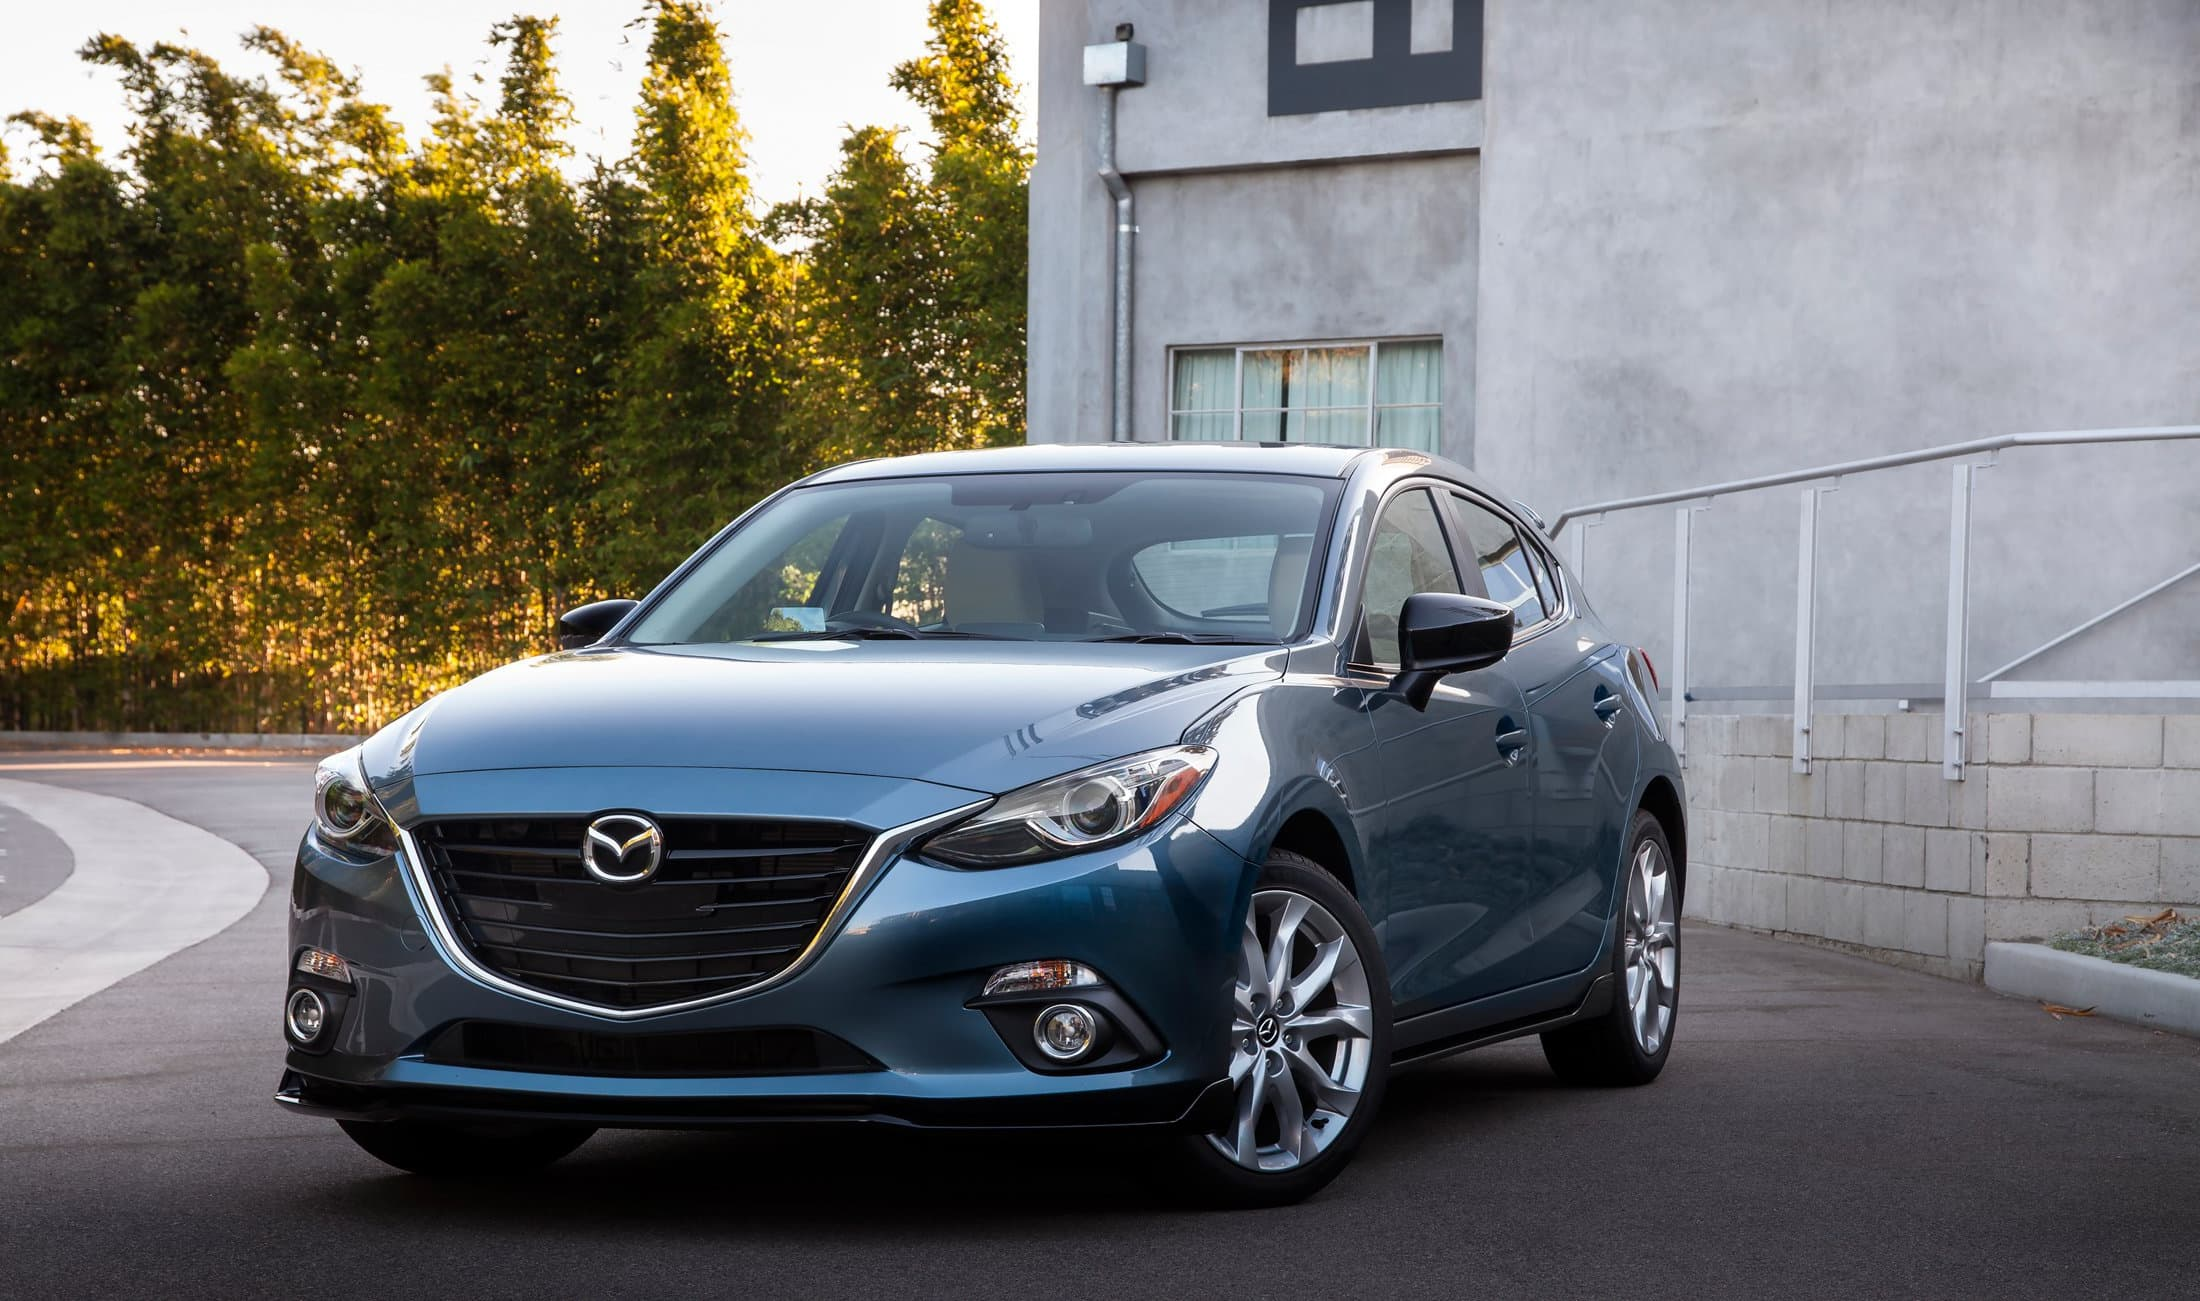 mazda 3 2016 sedan wallpapers hd high quality download. Black Bedroom Furniture Sets. Home Design Ideas